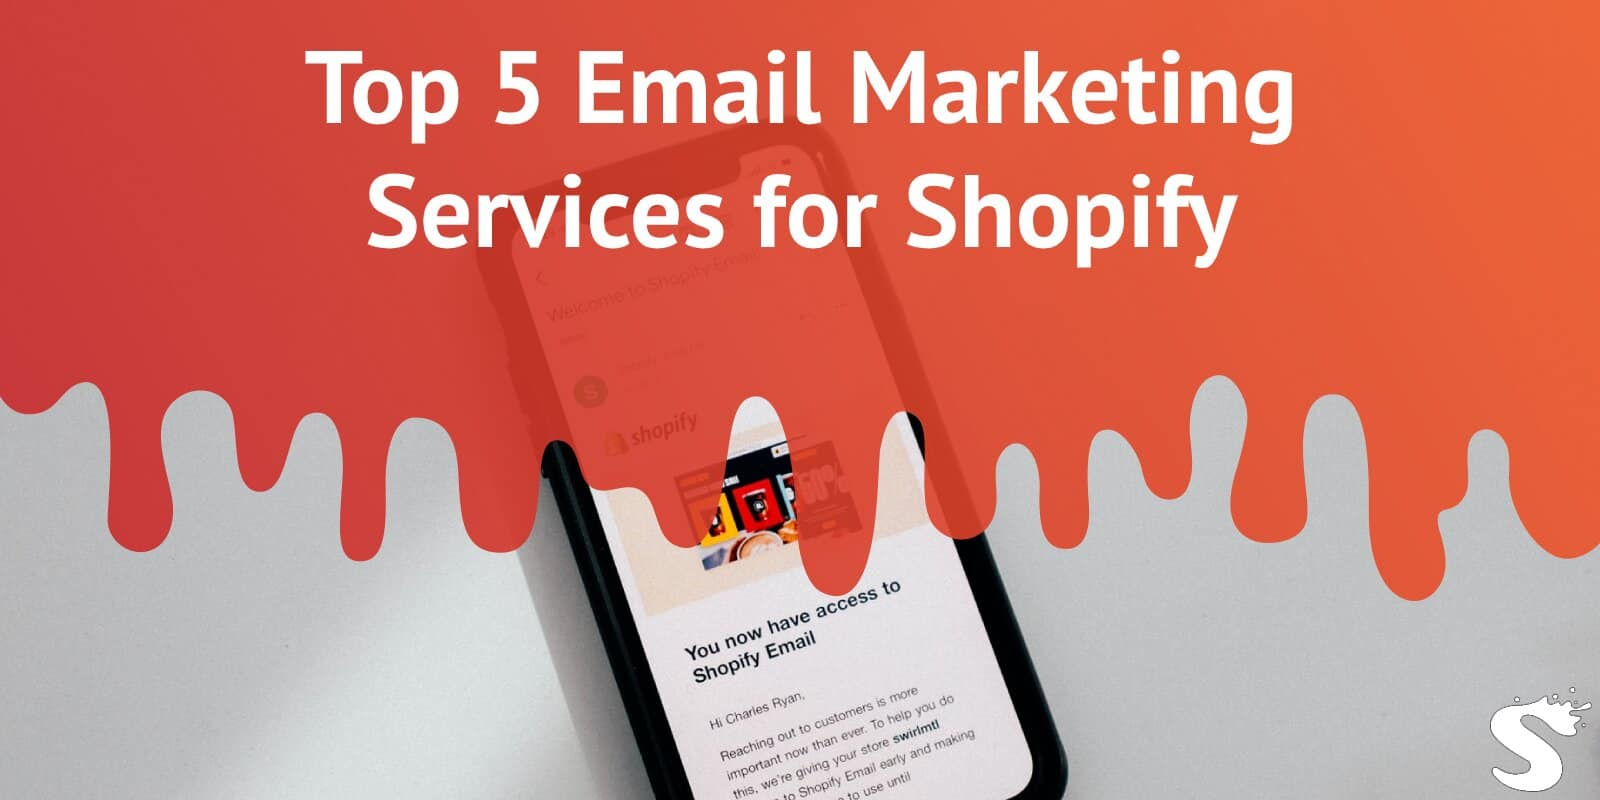 Top 5 Email Marketing Services for Shopify